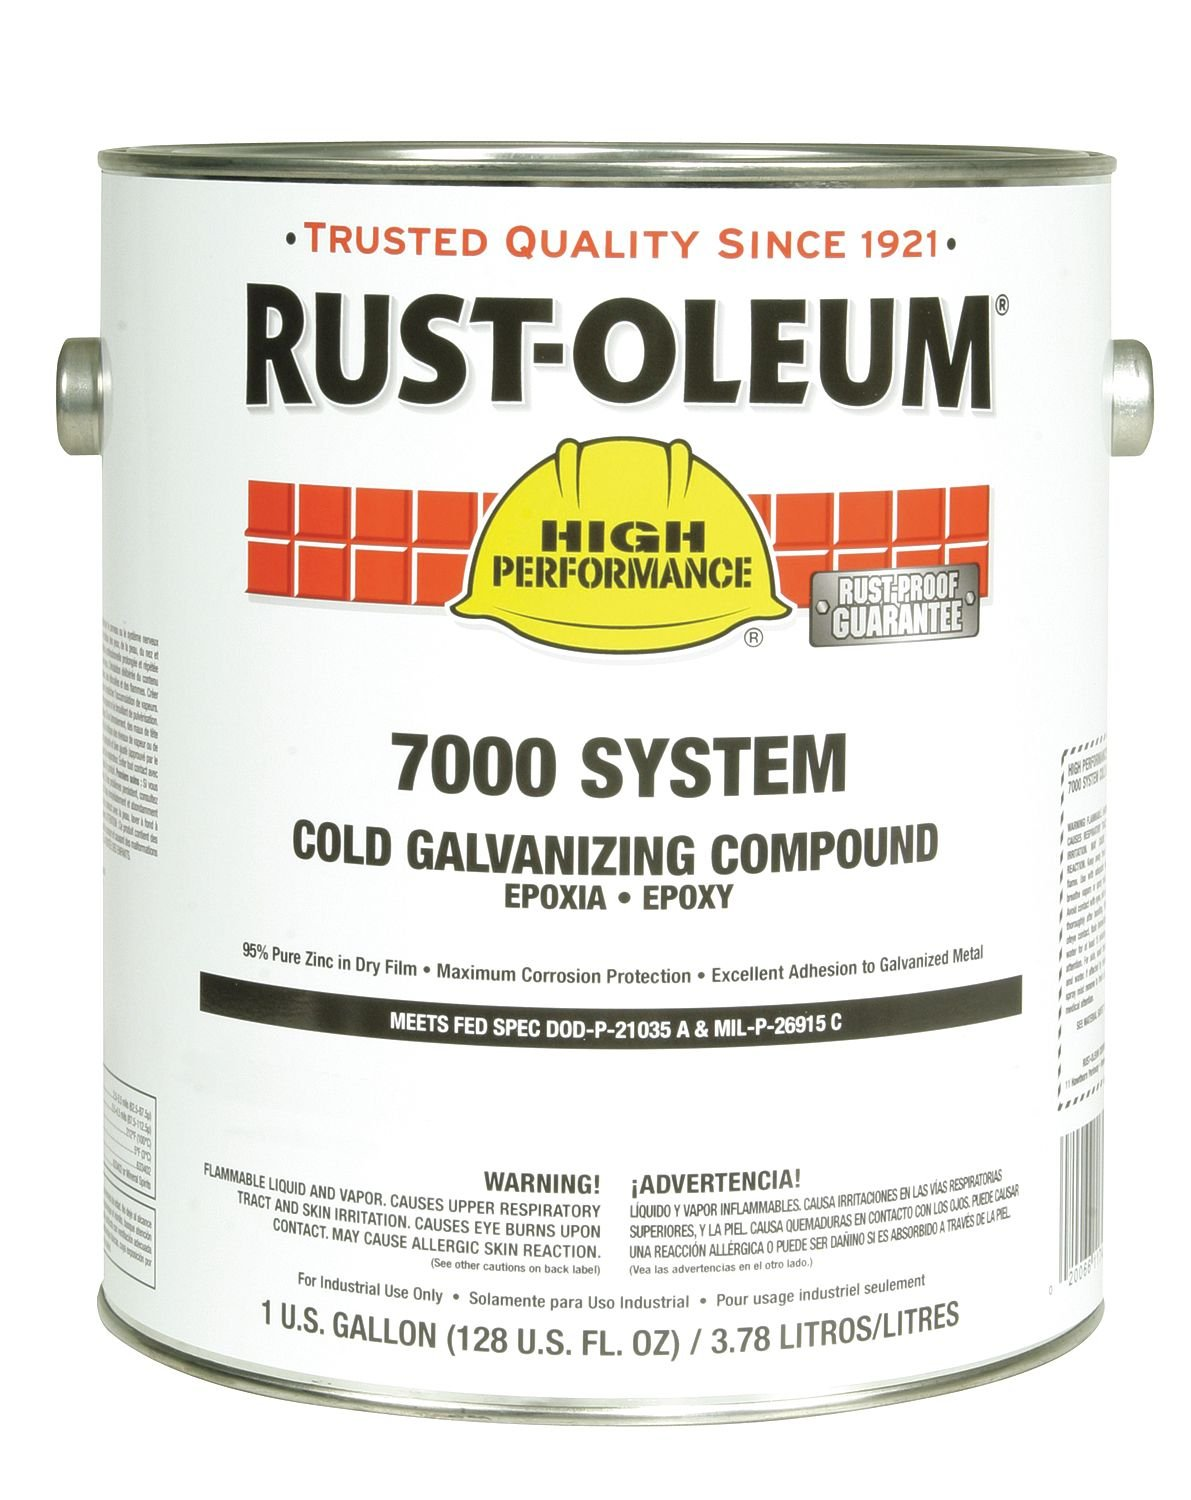 RUST-OLEUM Cold Galvanizing Compound Gray 1 gal